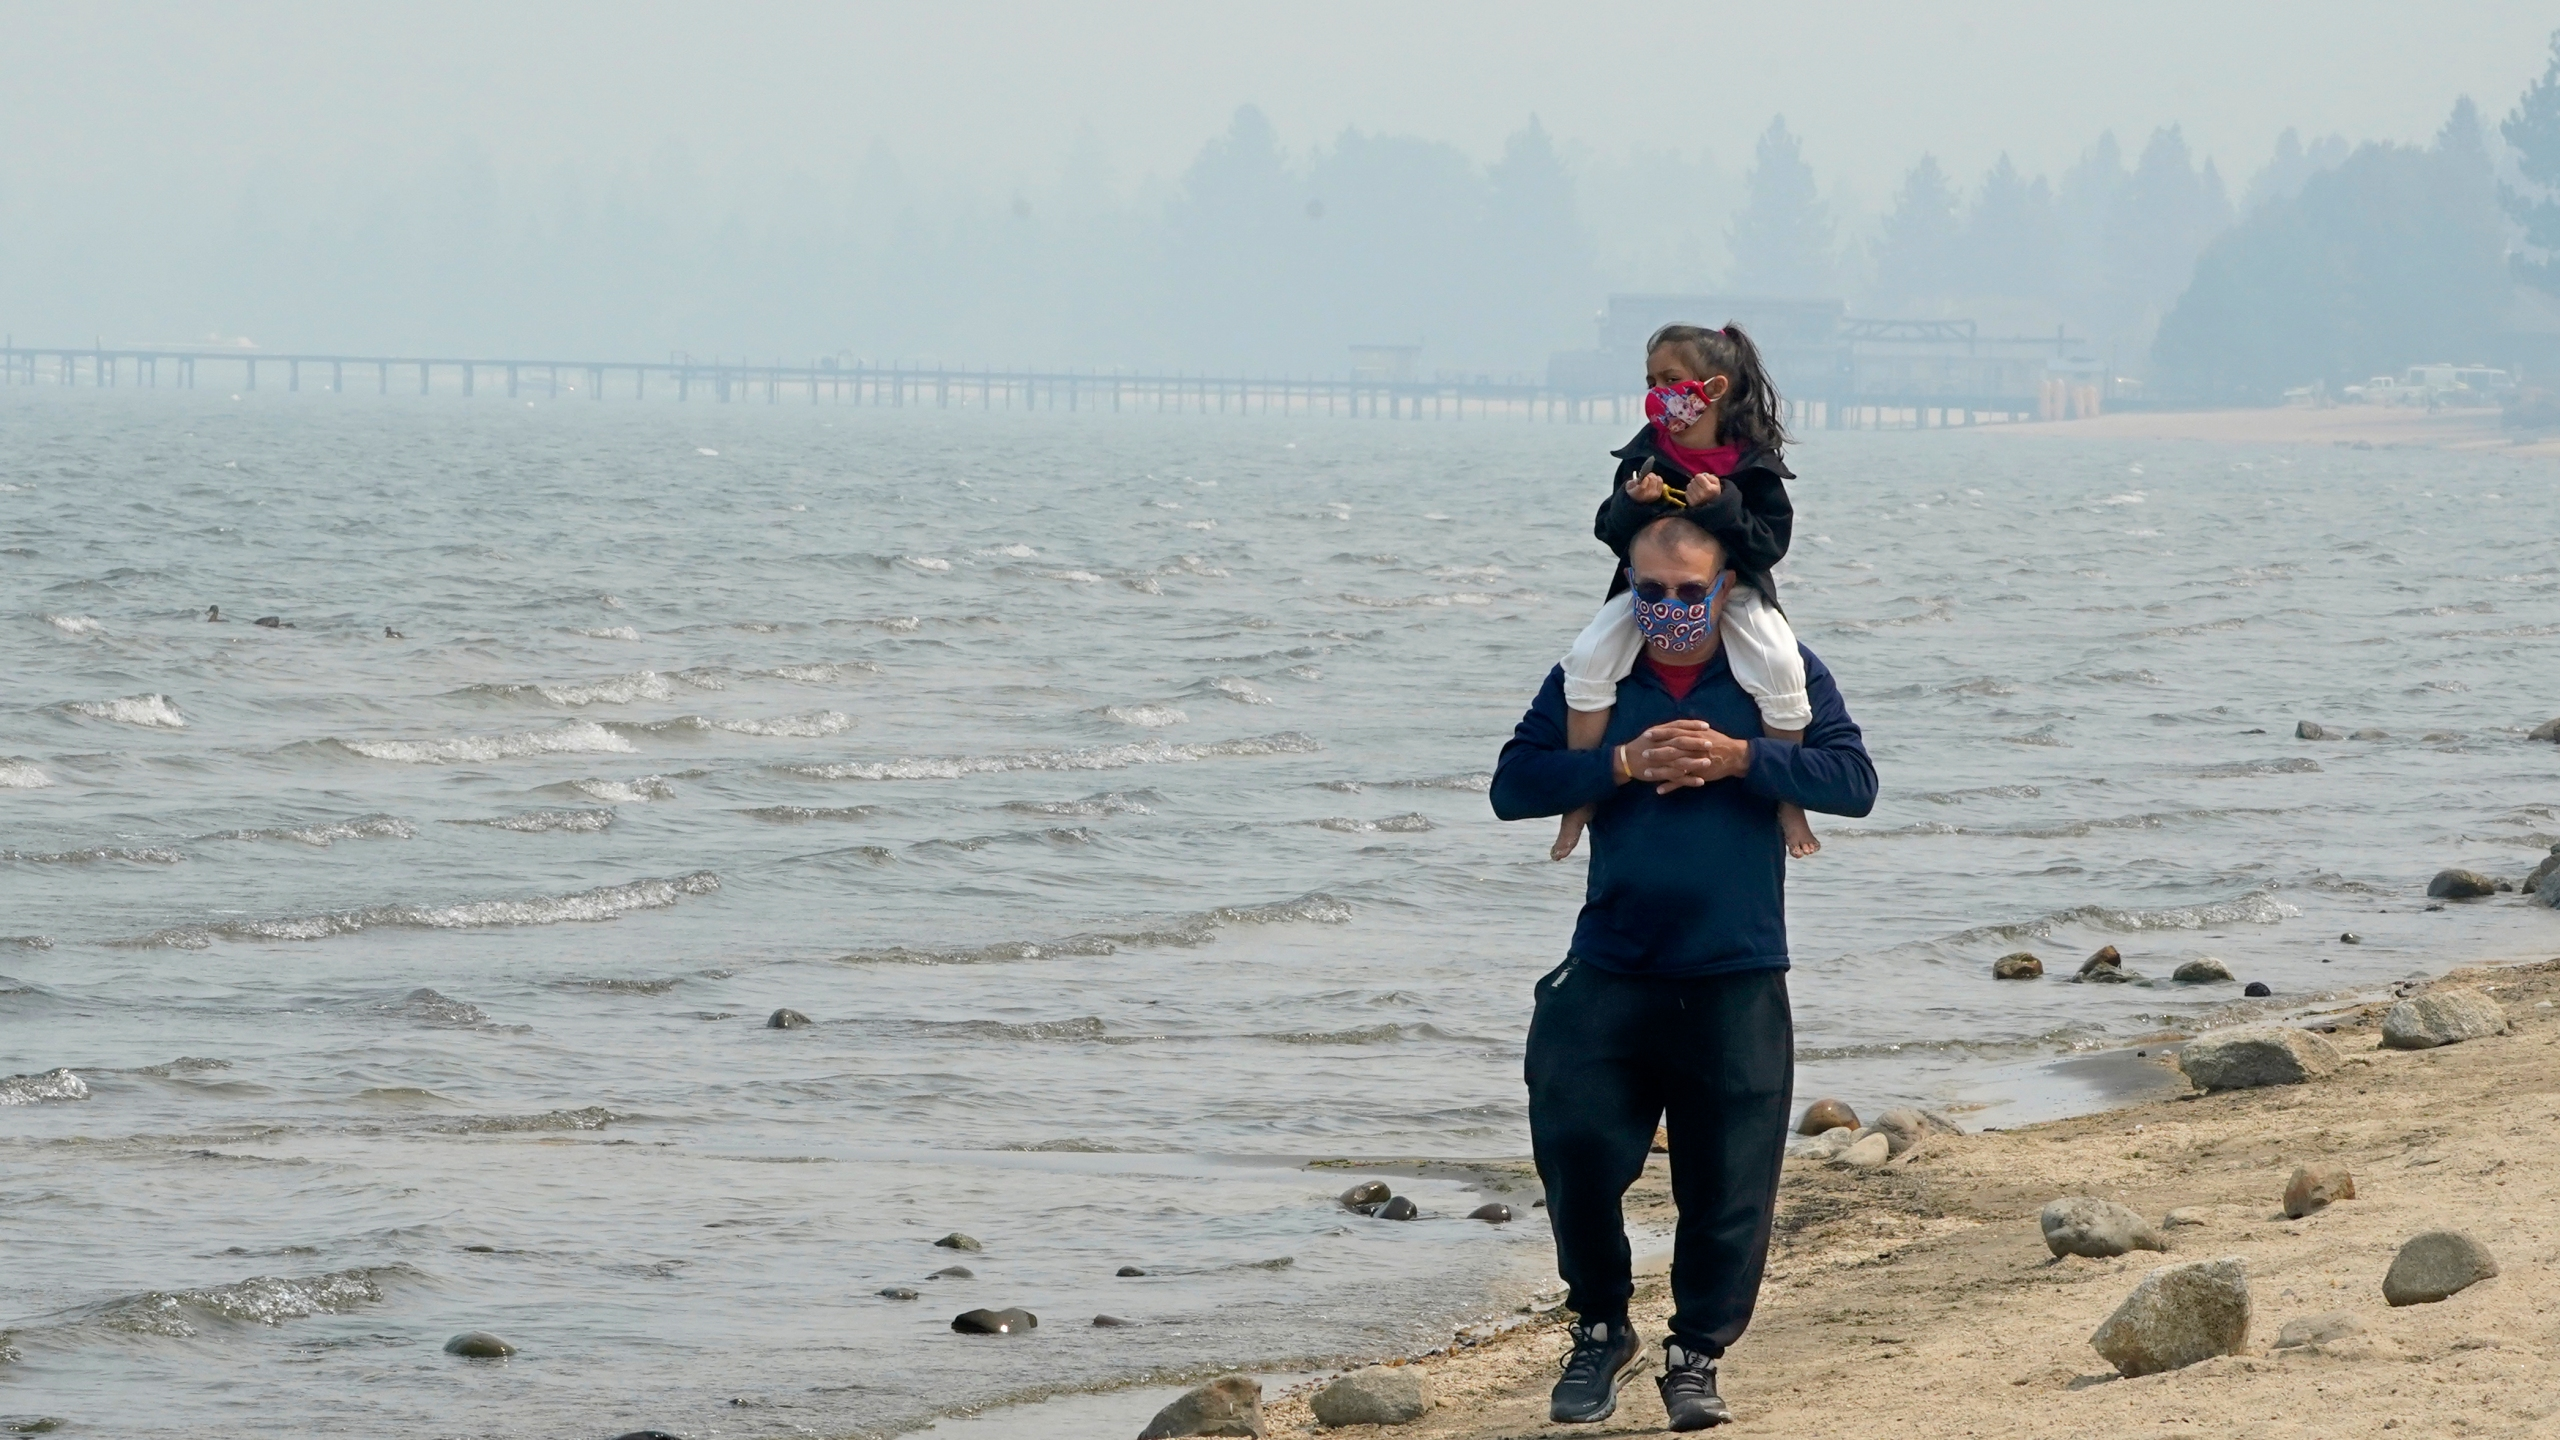 Presley Mila Perez gets a ride on the shoulders of George Estrada as they walk along the shore of Lake Tahoe in South Lake Tahoe on Aug. 24, 2021. (Rich Pedroncelli / Associated Press)